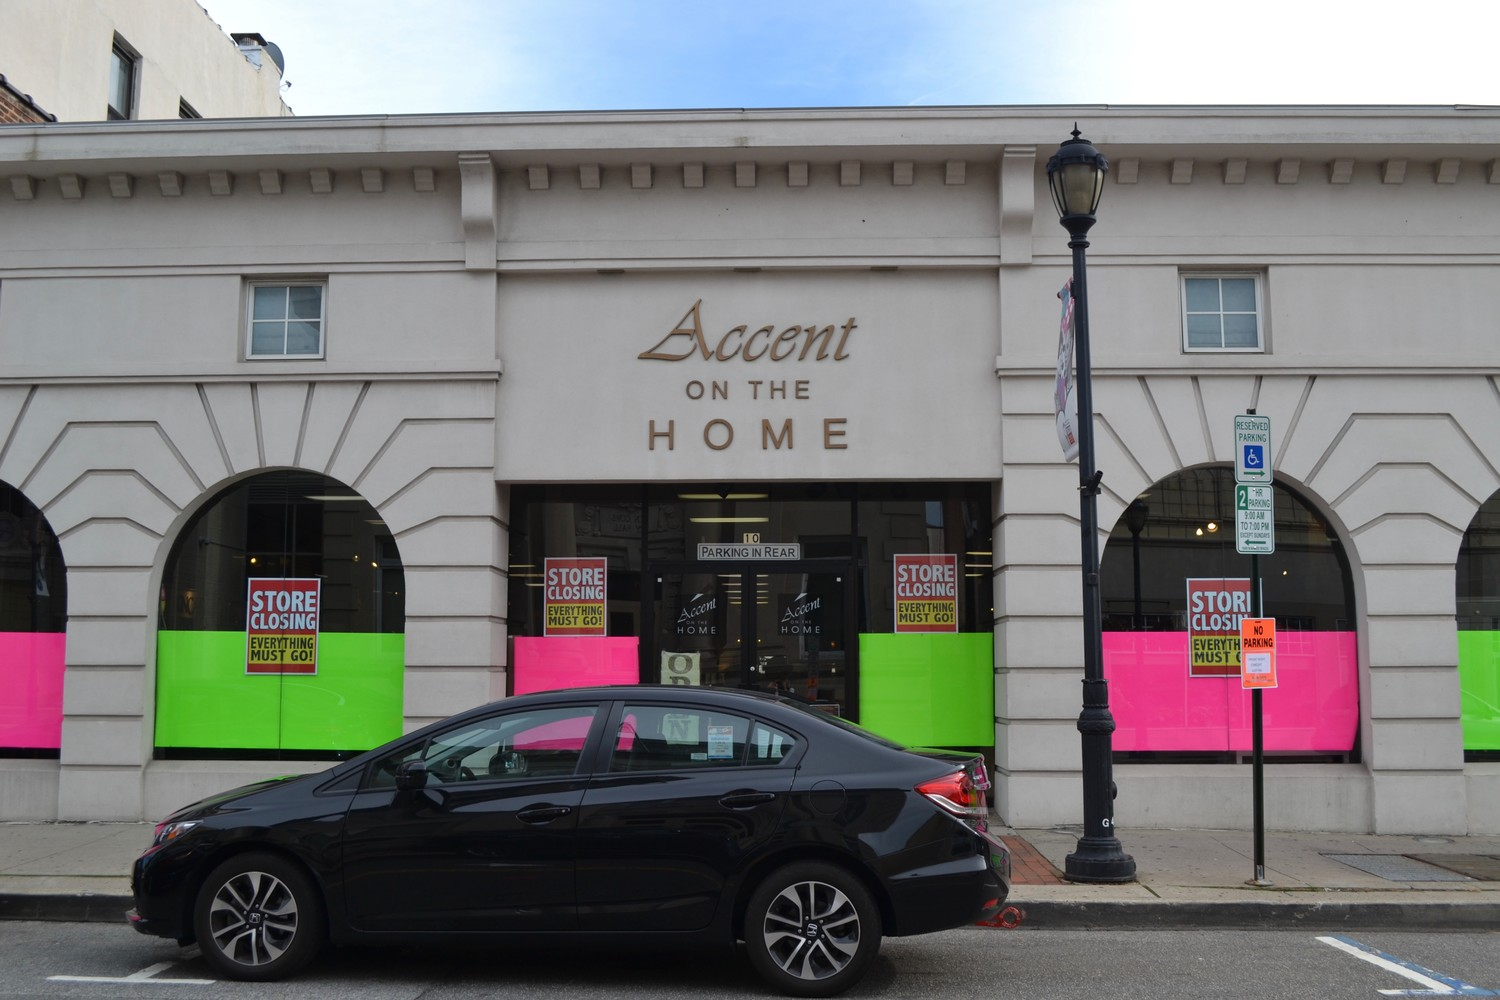 Accent on the Home storefront displayed their closing announcement and sale signs.